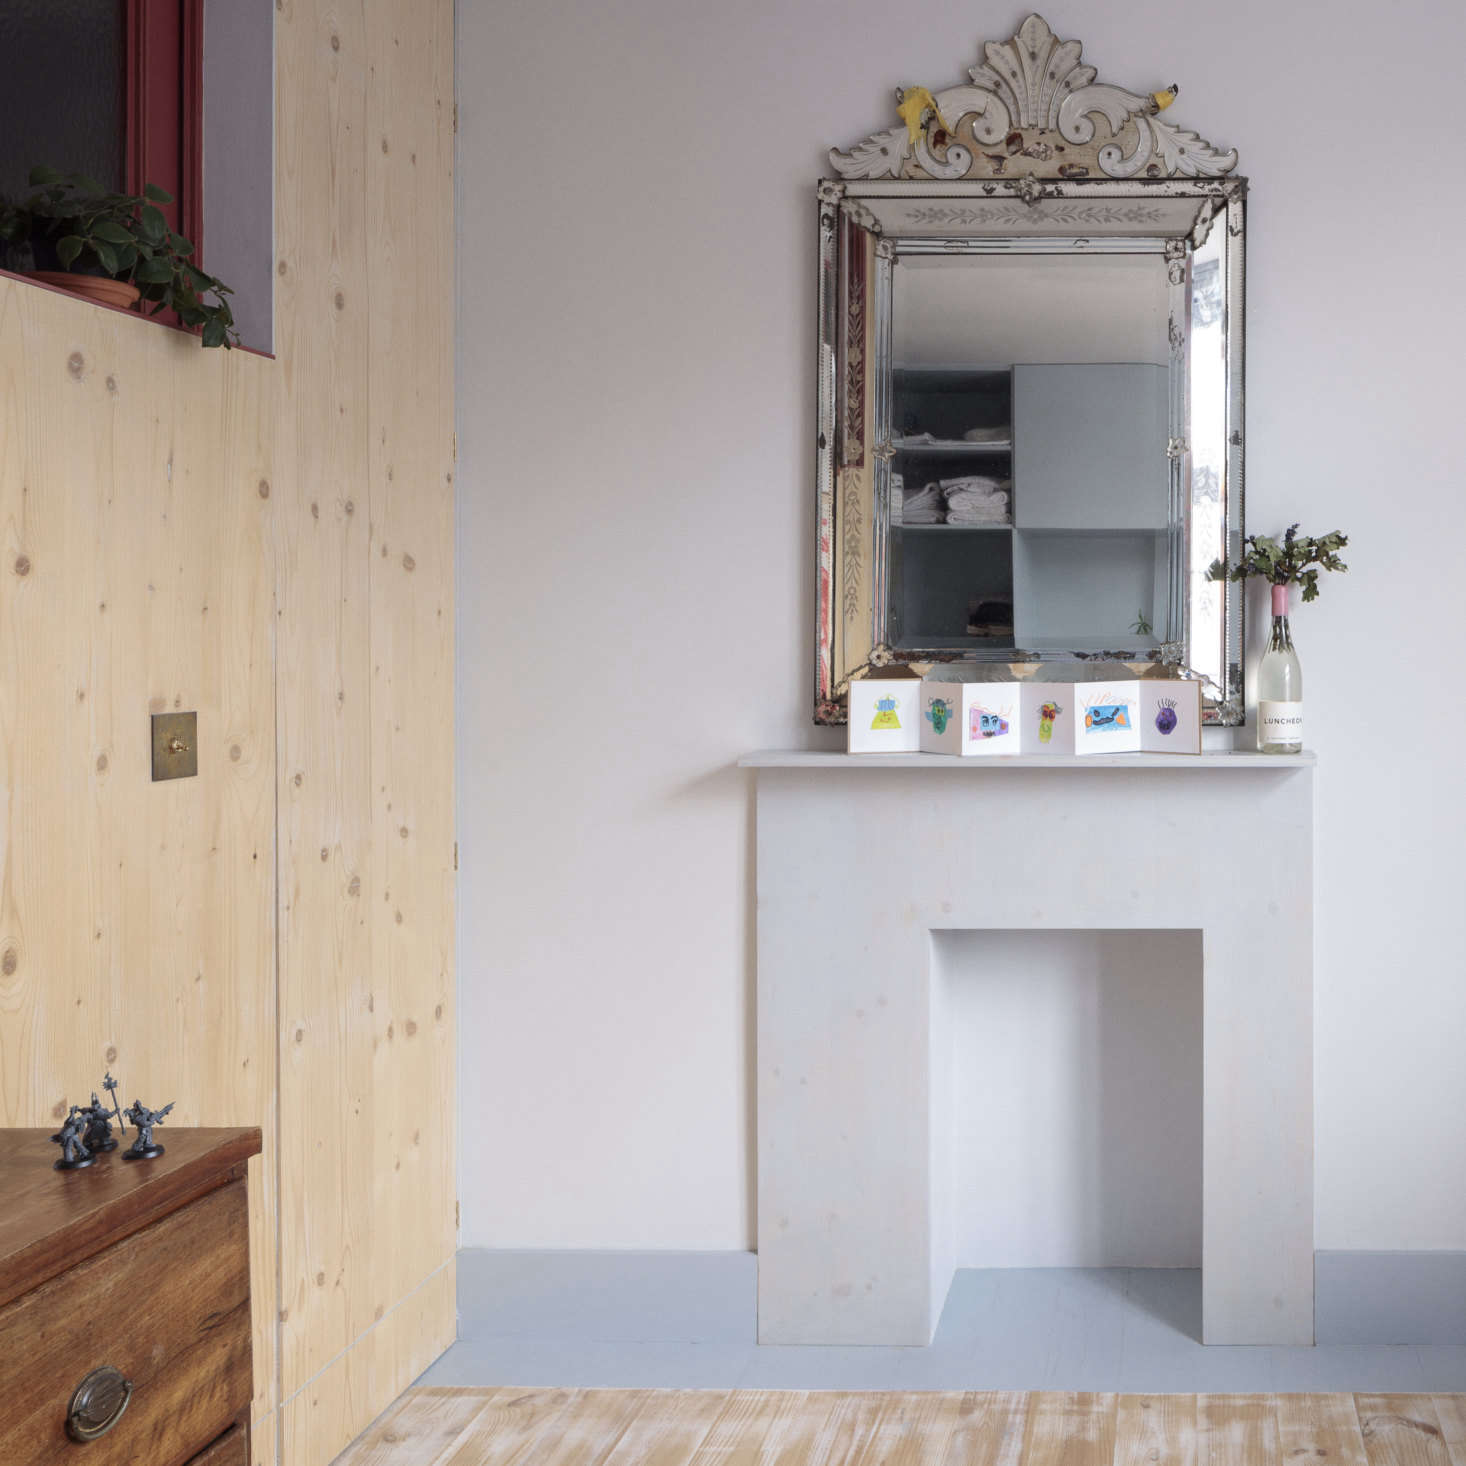 The same plywood was used to create a modernist mantel for an opened up (but not functioning) old fireplace. It&#8